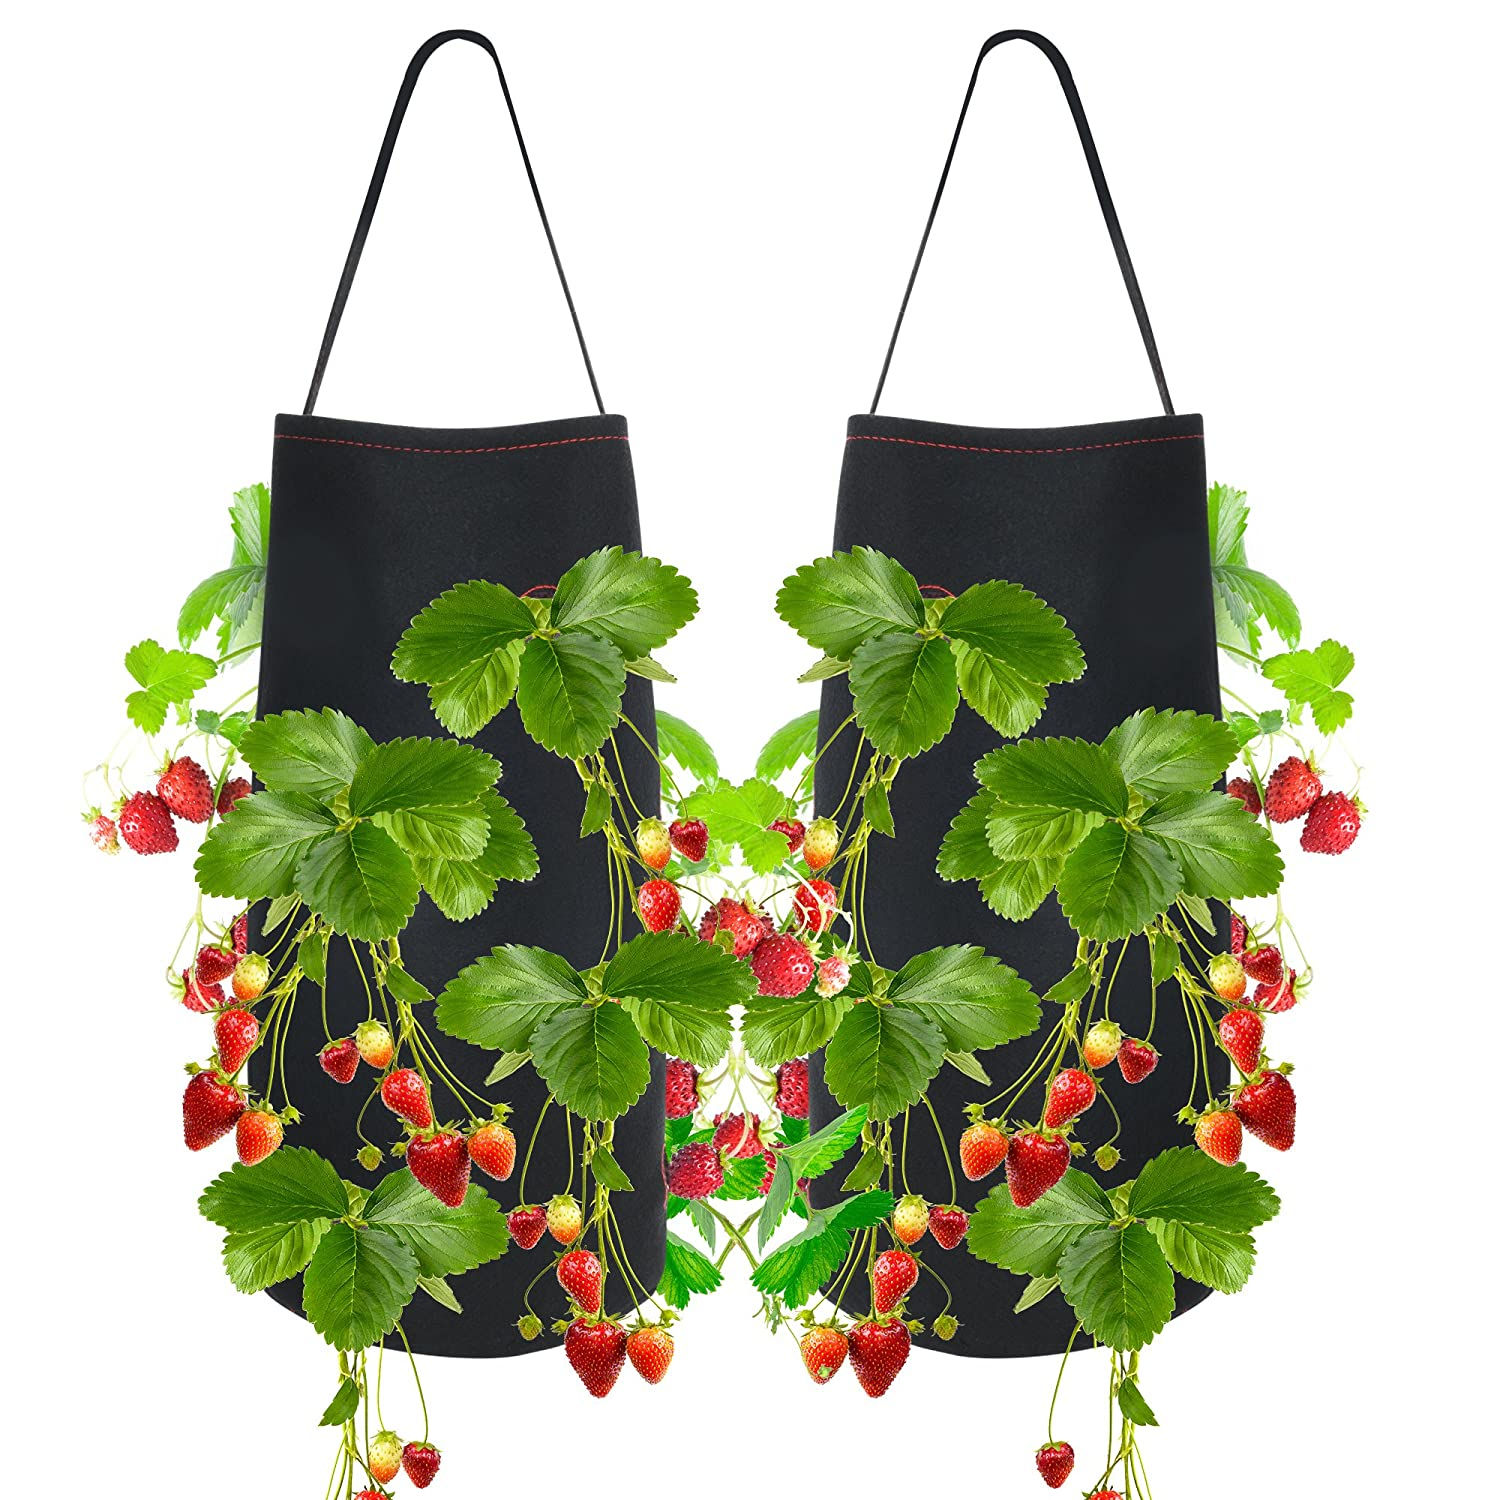 Pri Gardens Hanging Strawberry Planter for Strawberry Bare Root Plants (Roots not Included) Felt Material 2 Pack